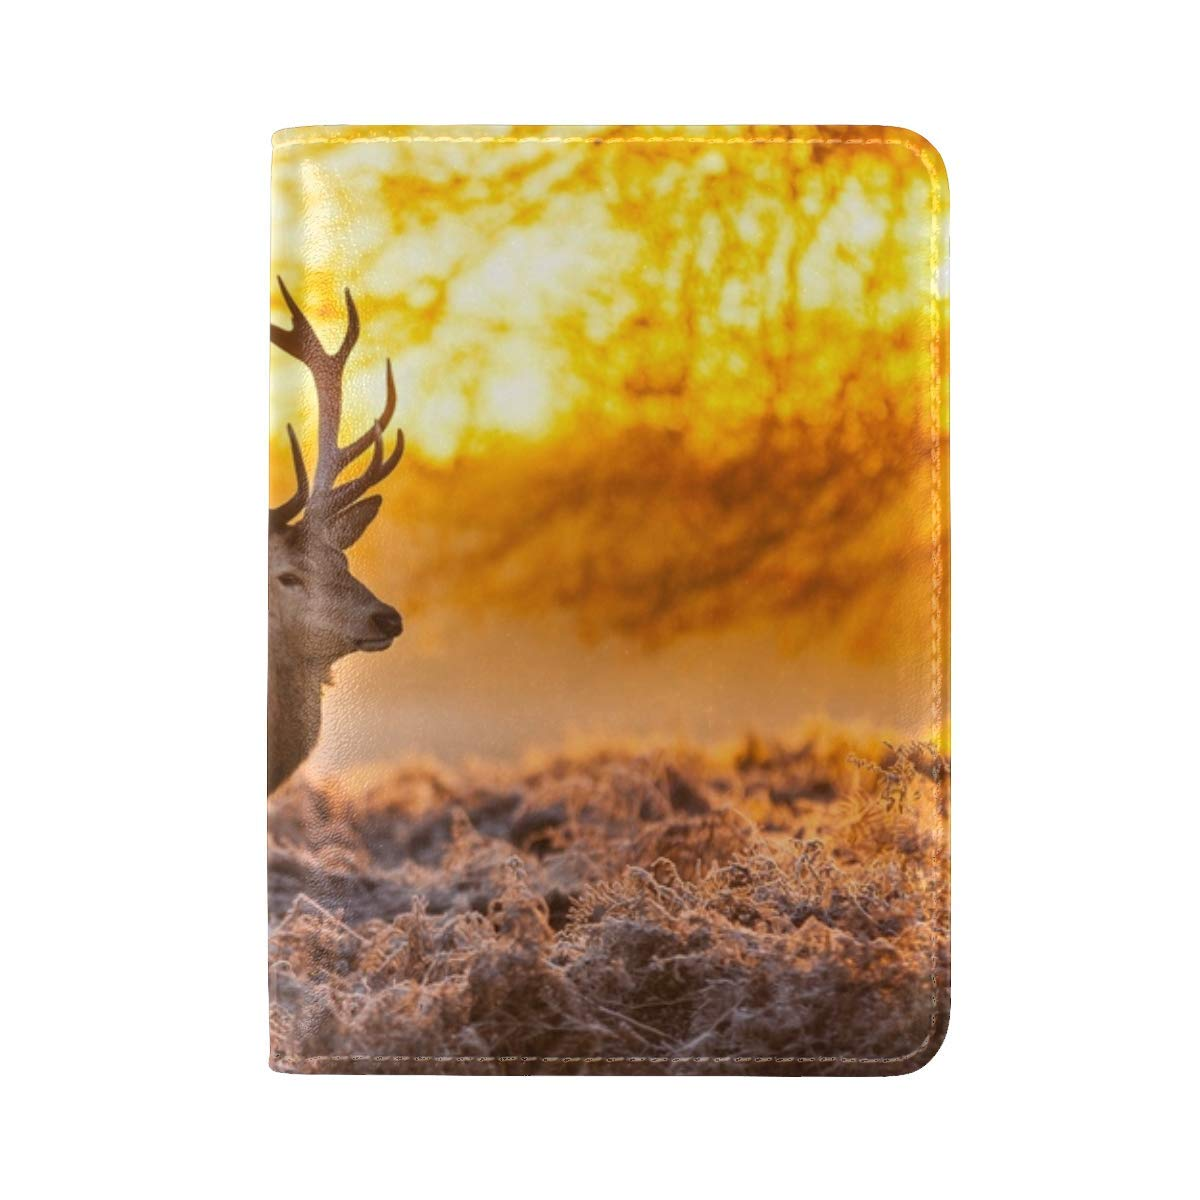 Deer Frost Grass Sunset Nature Leather Passport Holder Cover Case Travel One Pocket